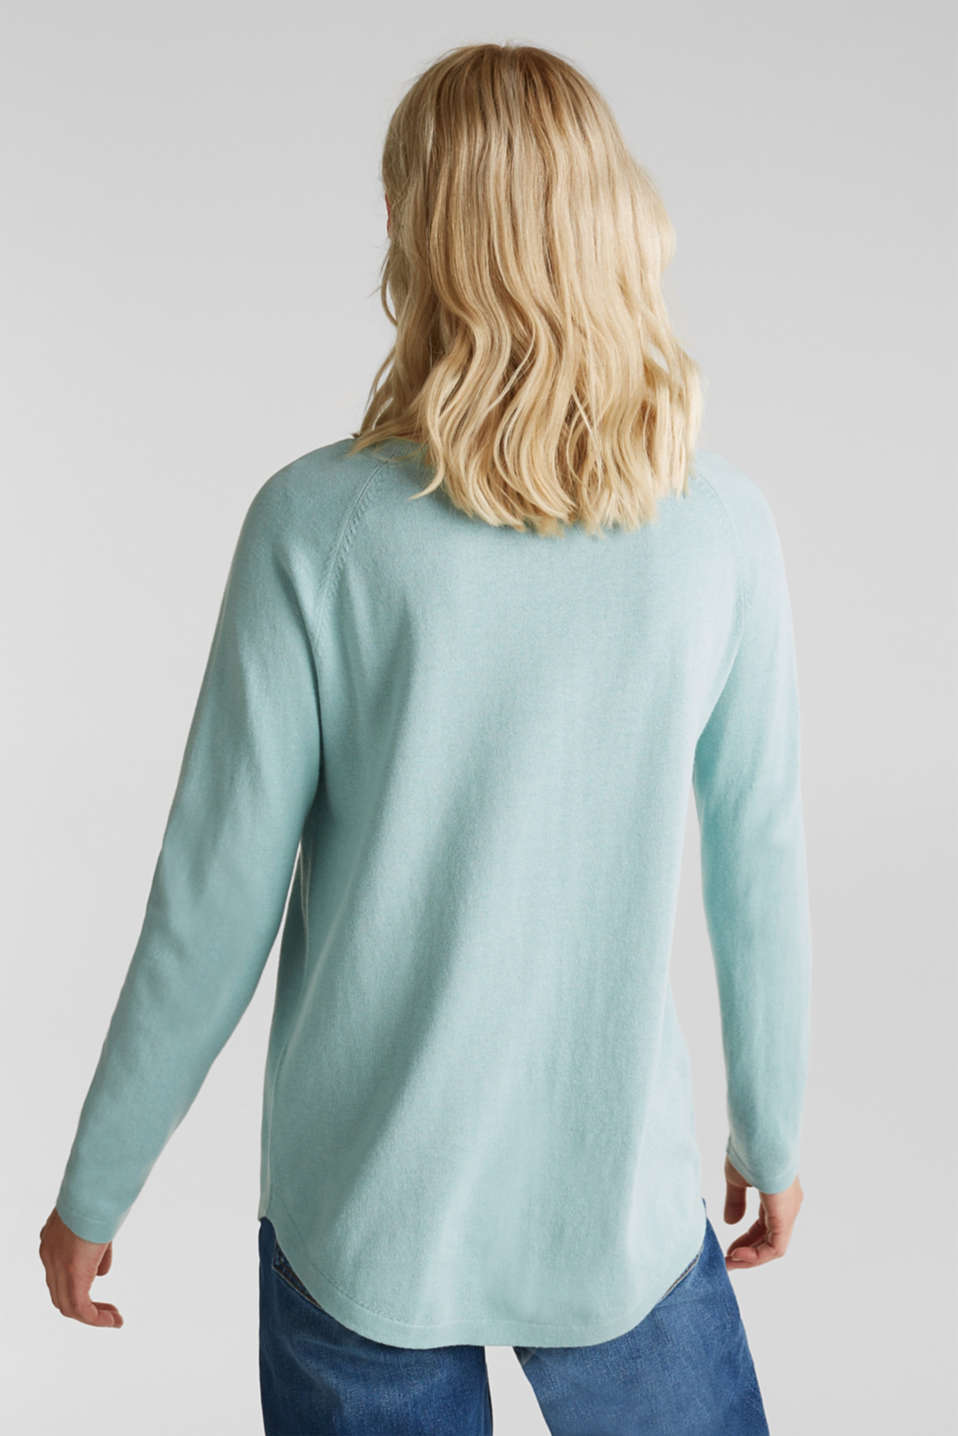 With linen: Jumper with open-work patterned details, LIGHT AQUA GREEN, detail image number 2